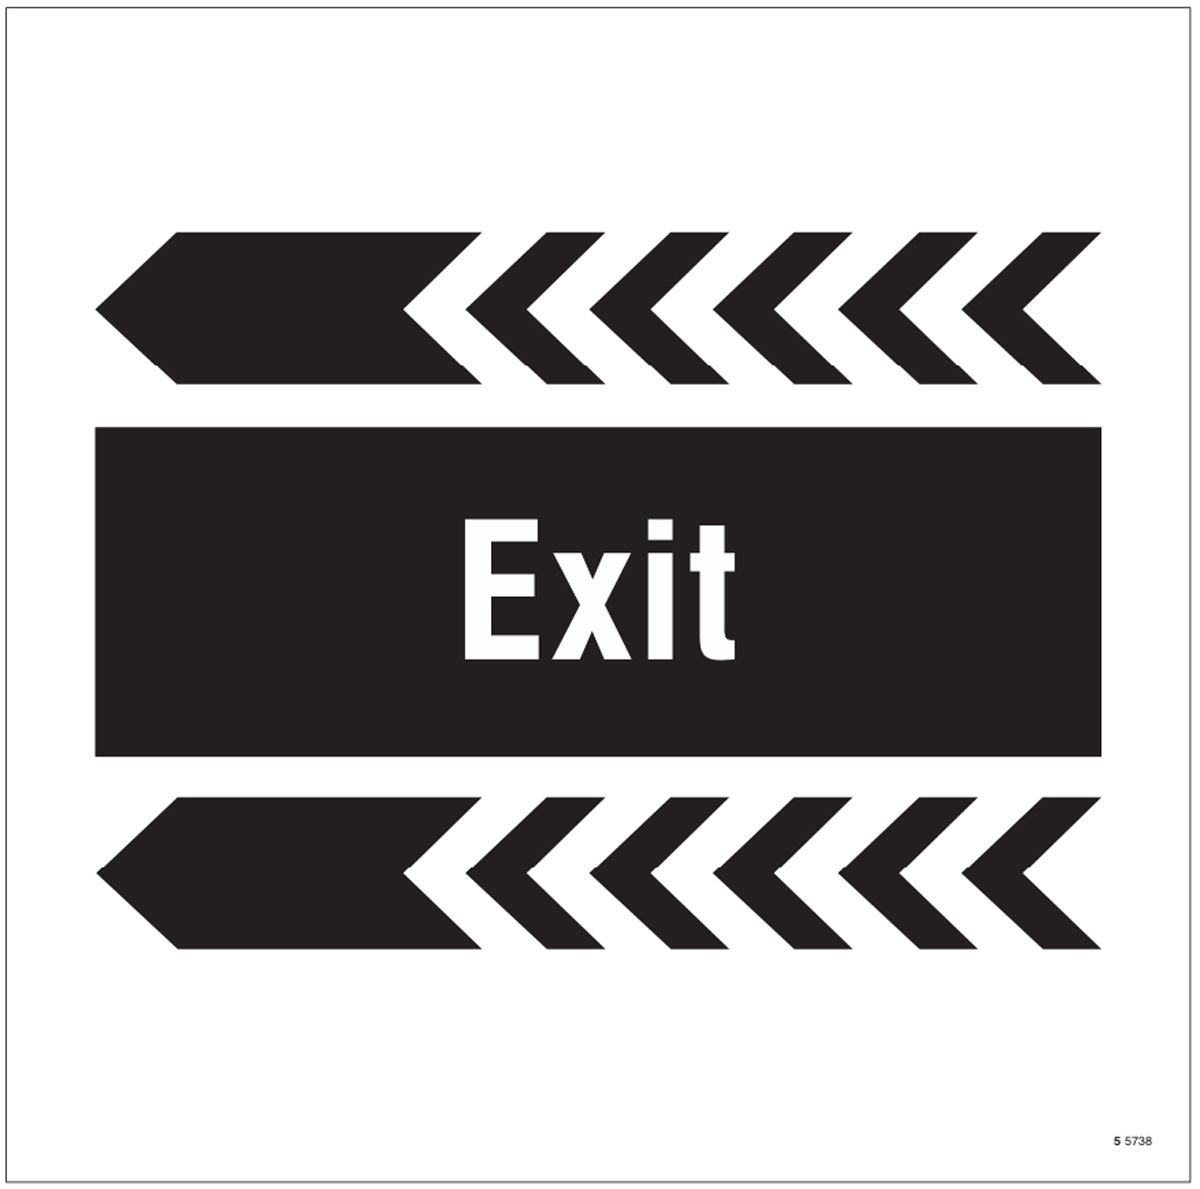 Exit, arrow left site saver sign 400x400mm